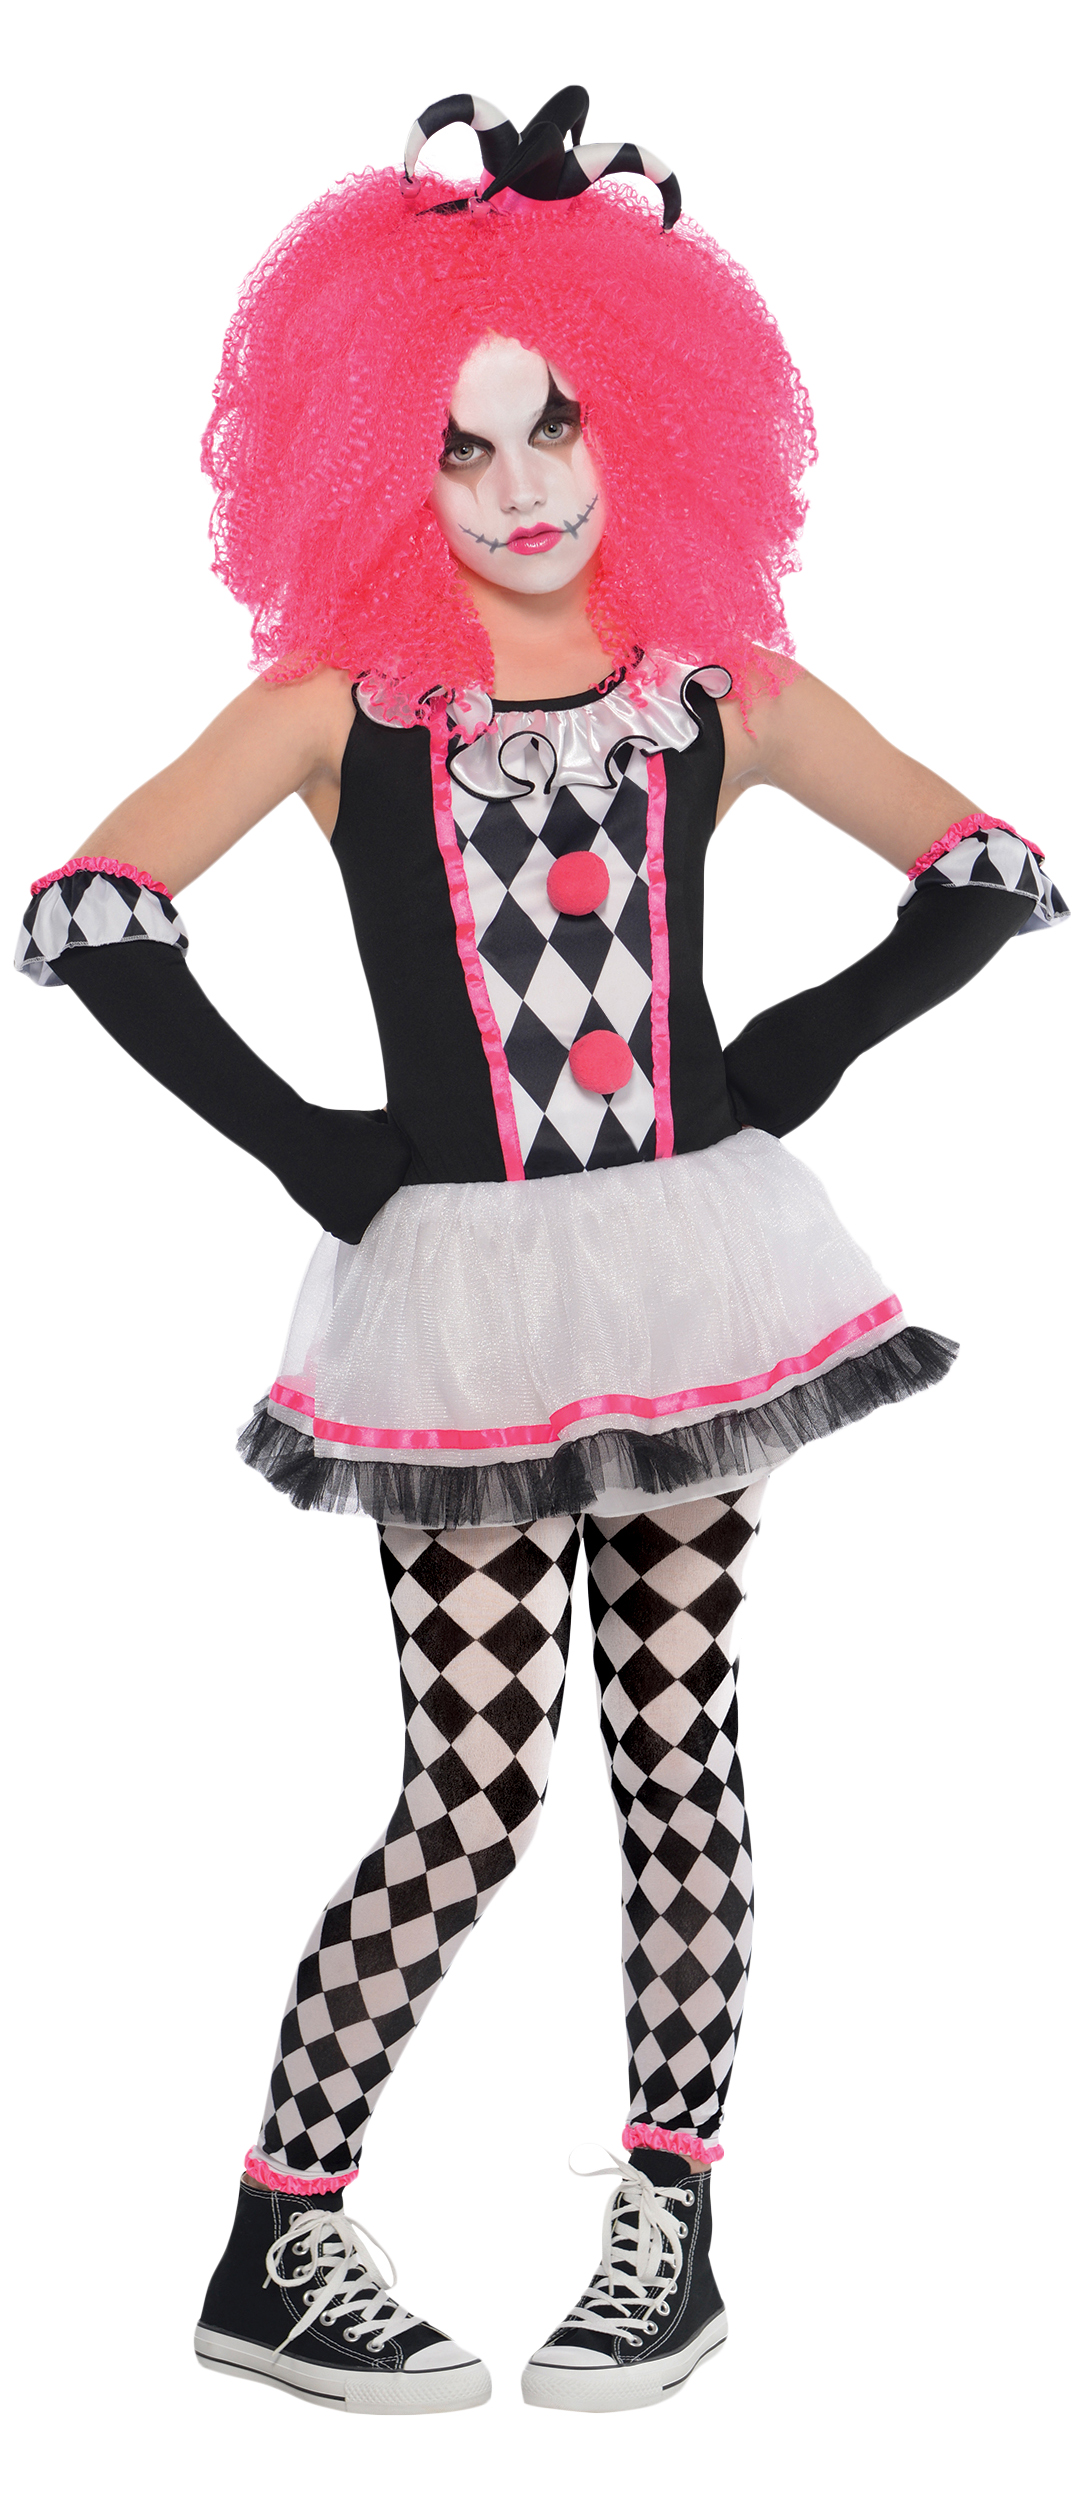 Halloween Clown Girl Outfit.Girls Circus Sweetie Clown Costume